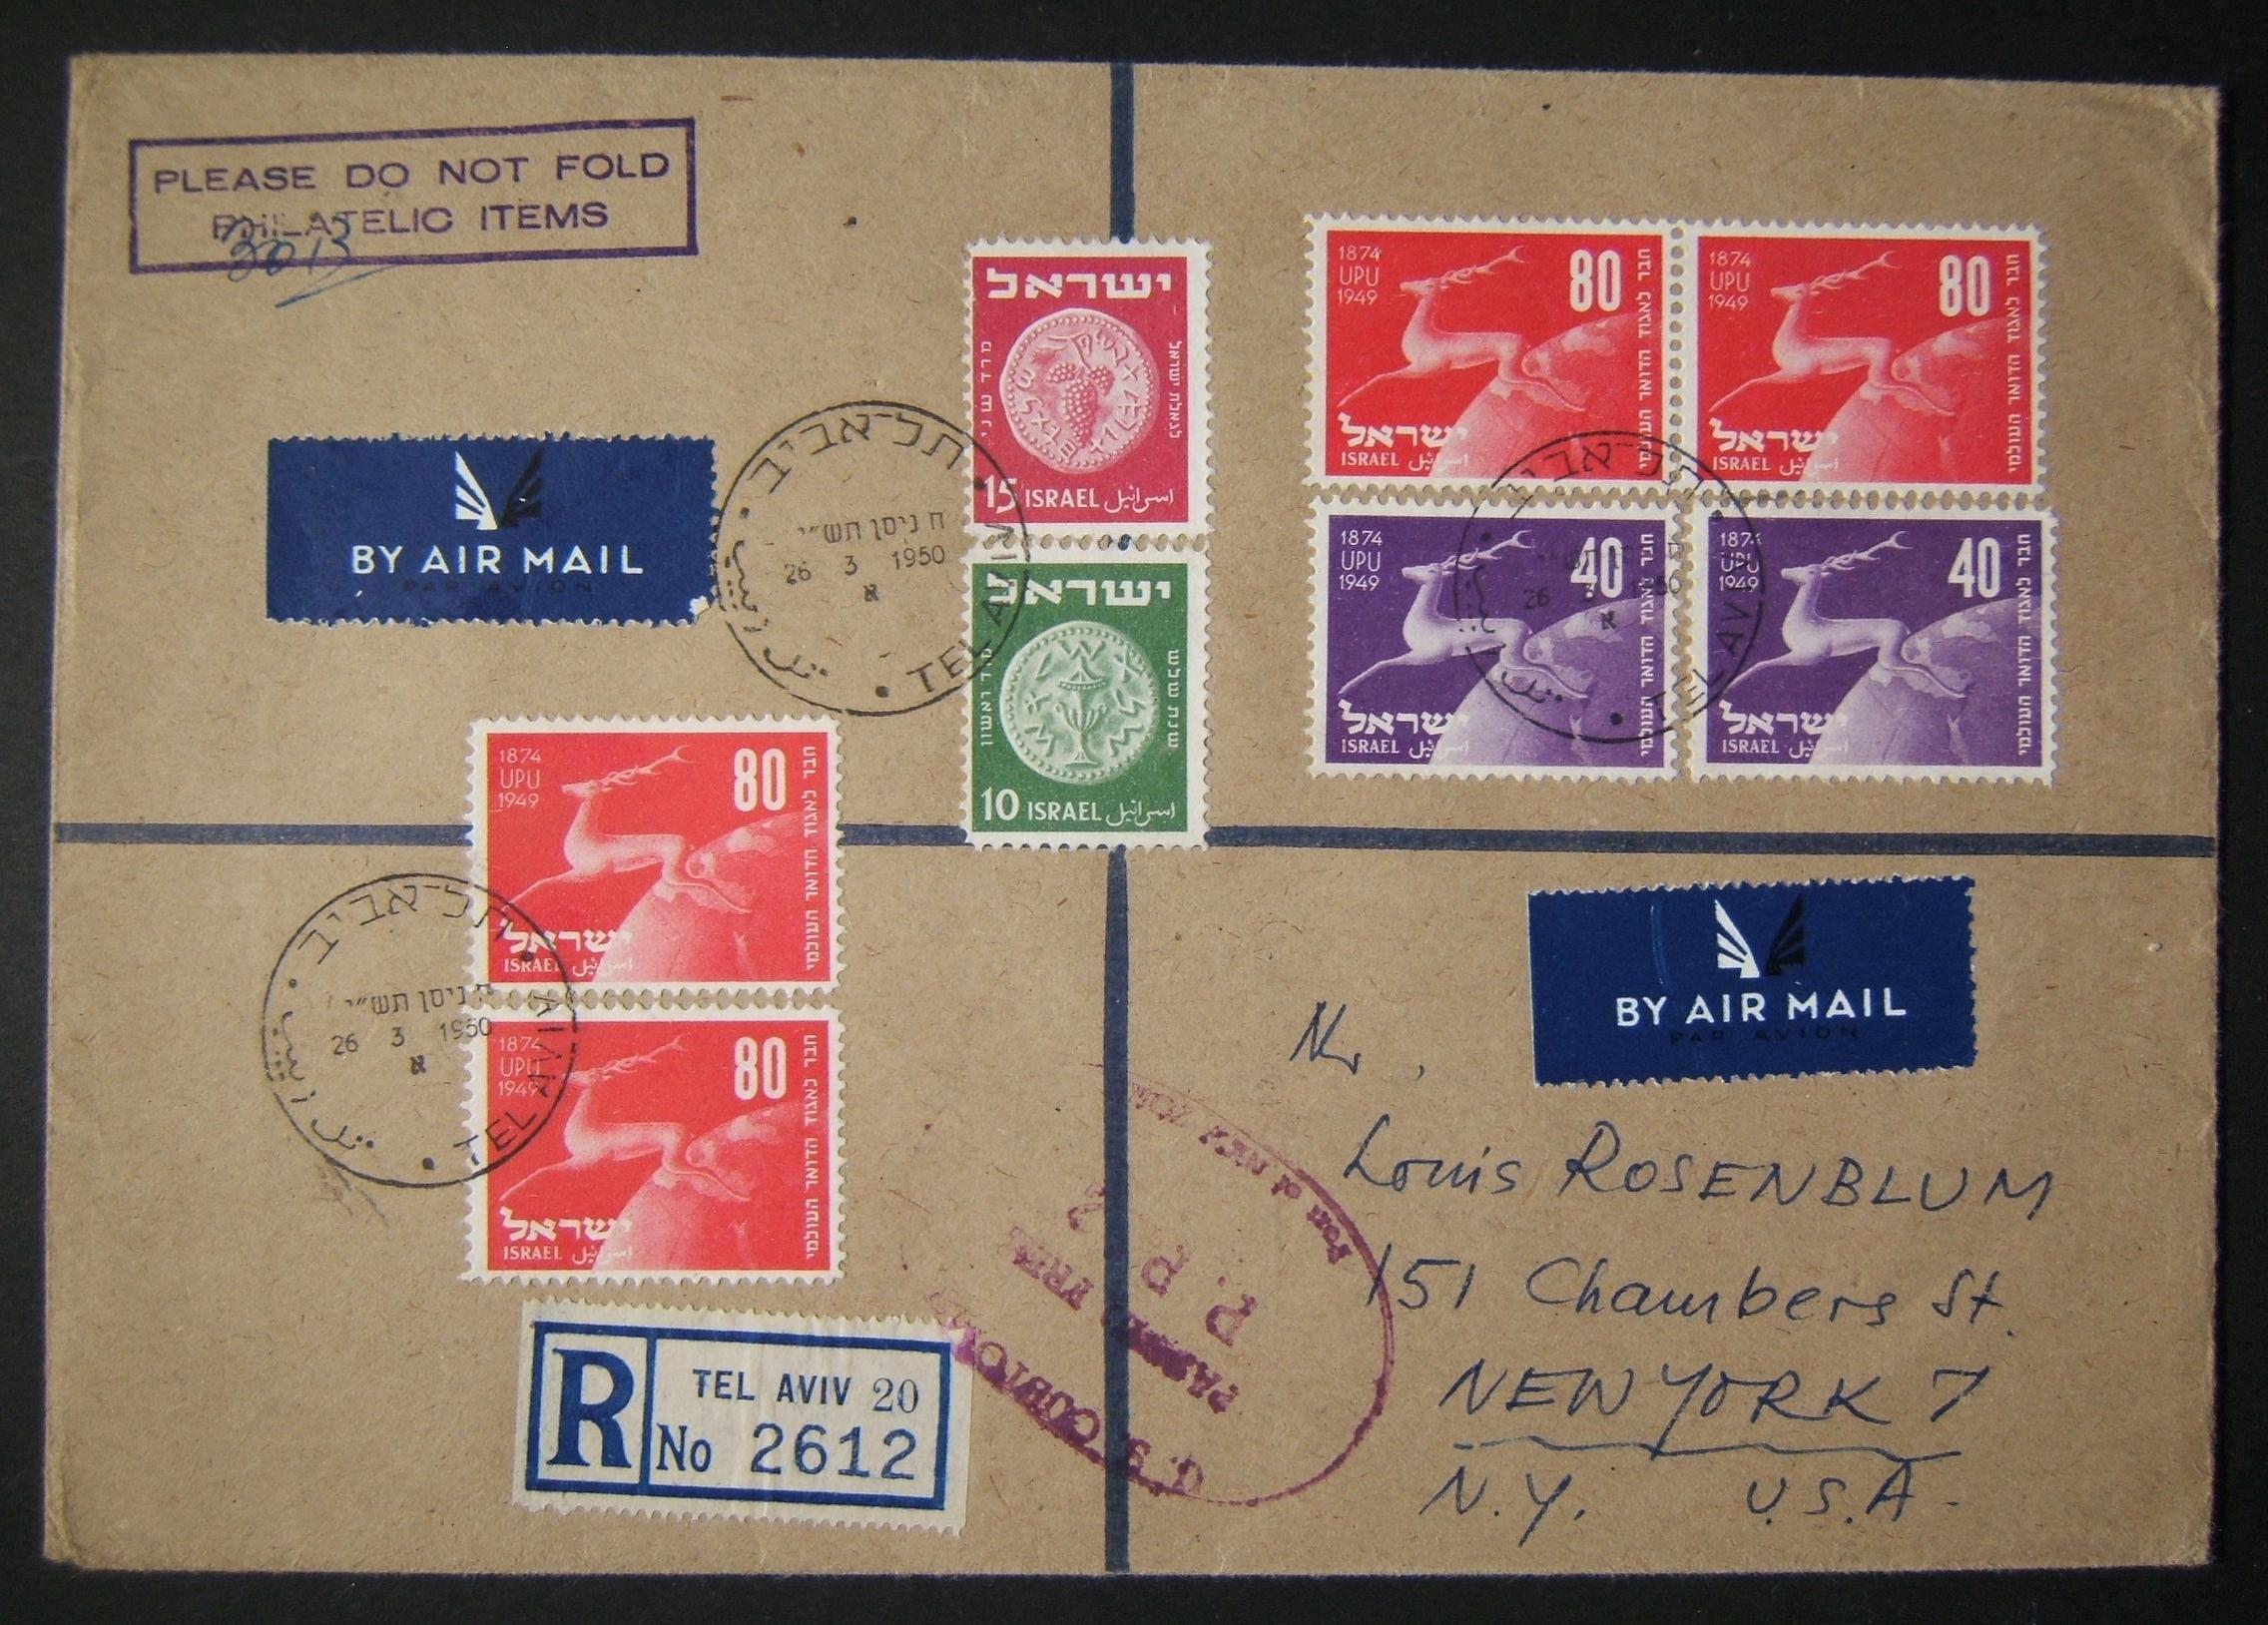 3/1950 heavy airmail to US mix franked 425Pr with 1st day usage of UPU stamps